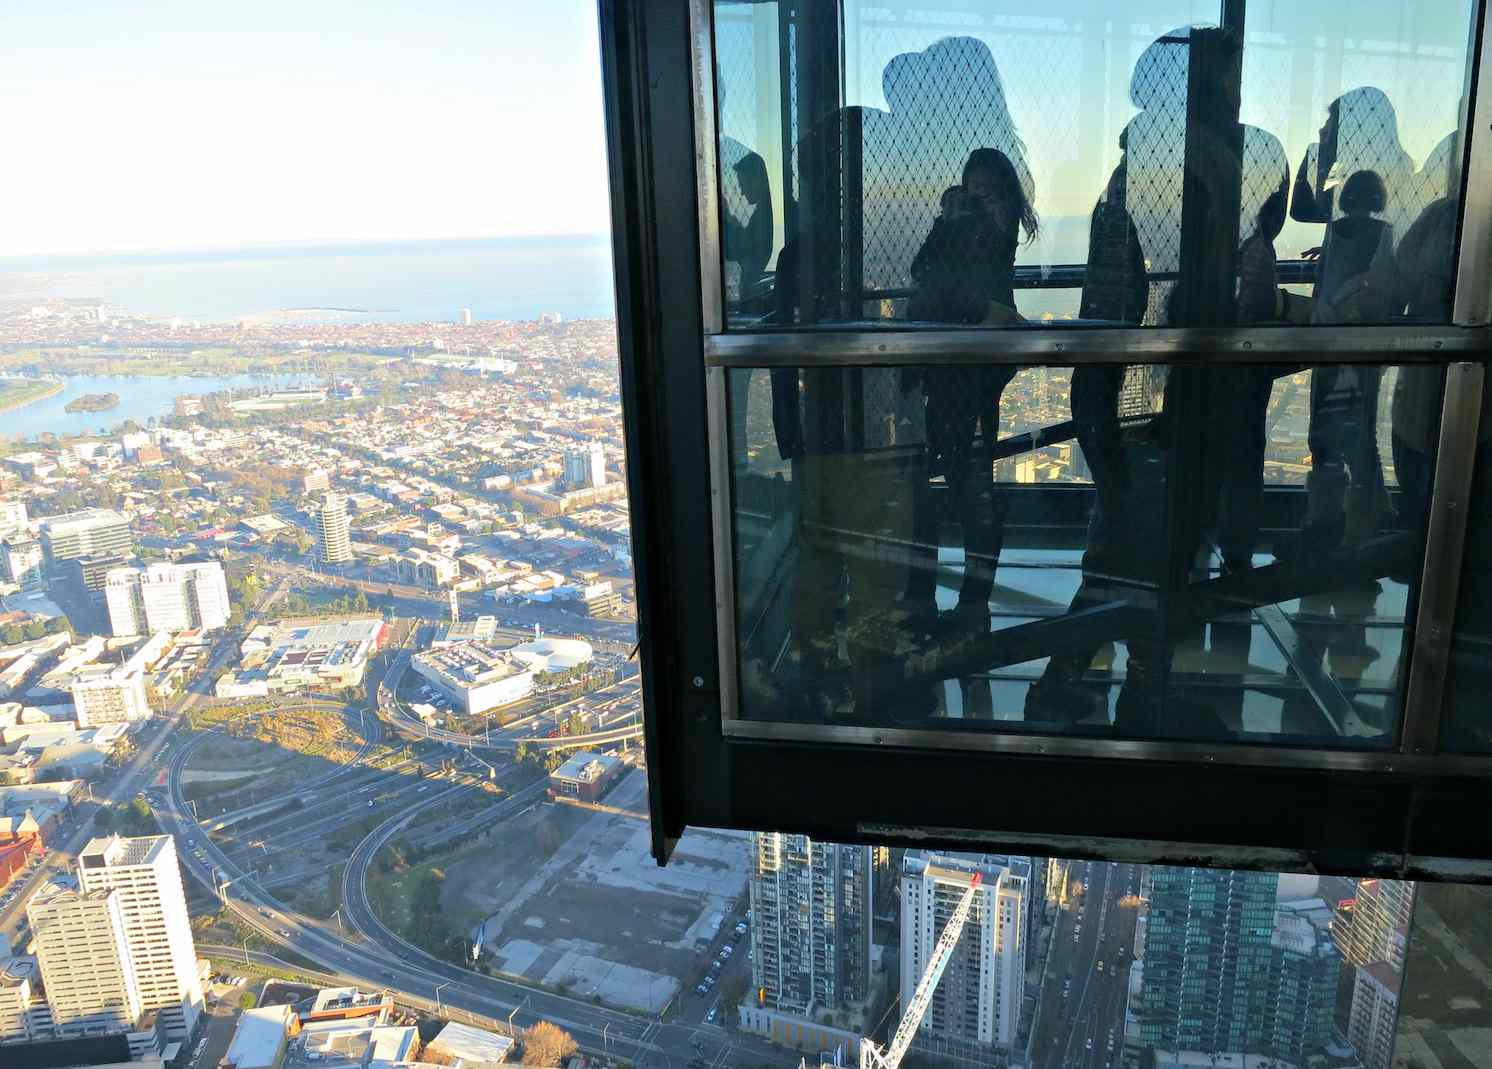 Visitors to the Eureka Skydeck look out onto the Melbourne cityscape.